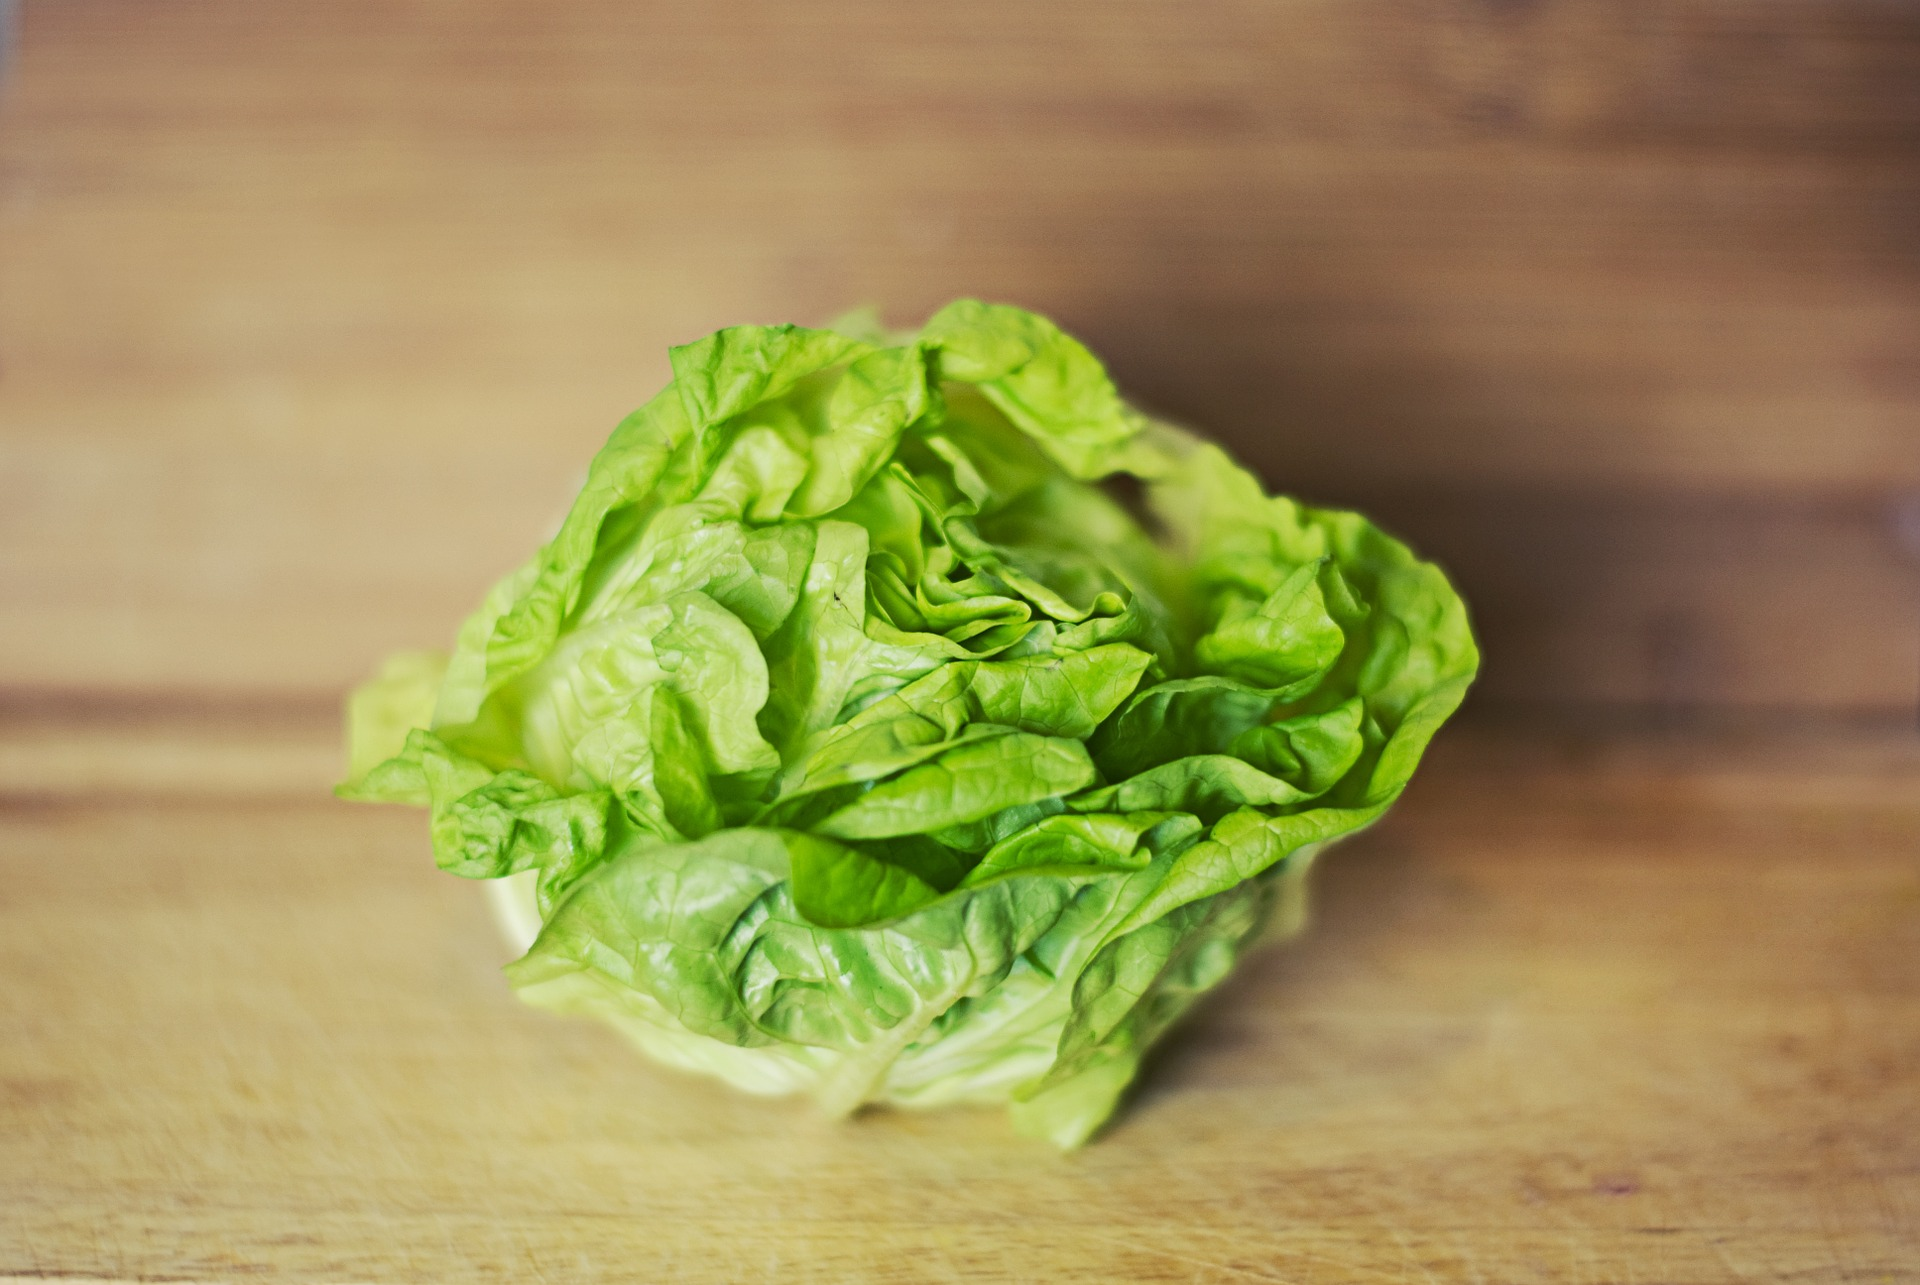 fresh produce: lettuce